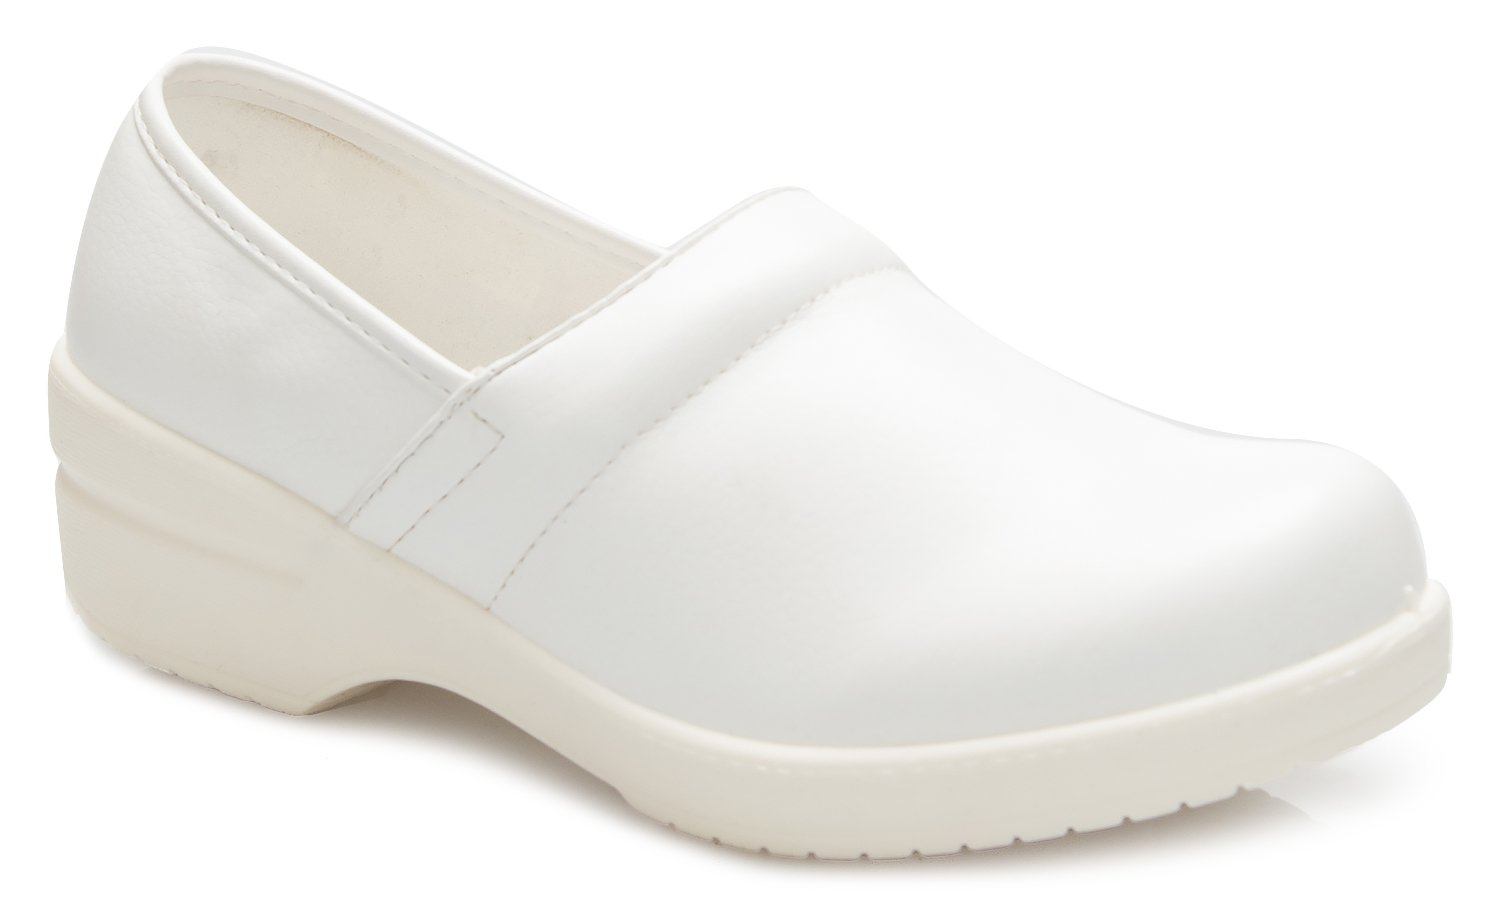 OLIVIA K Women's Relaxed Fit Easy Slip On Resistant Office Work School Uniform Flatform Shoes